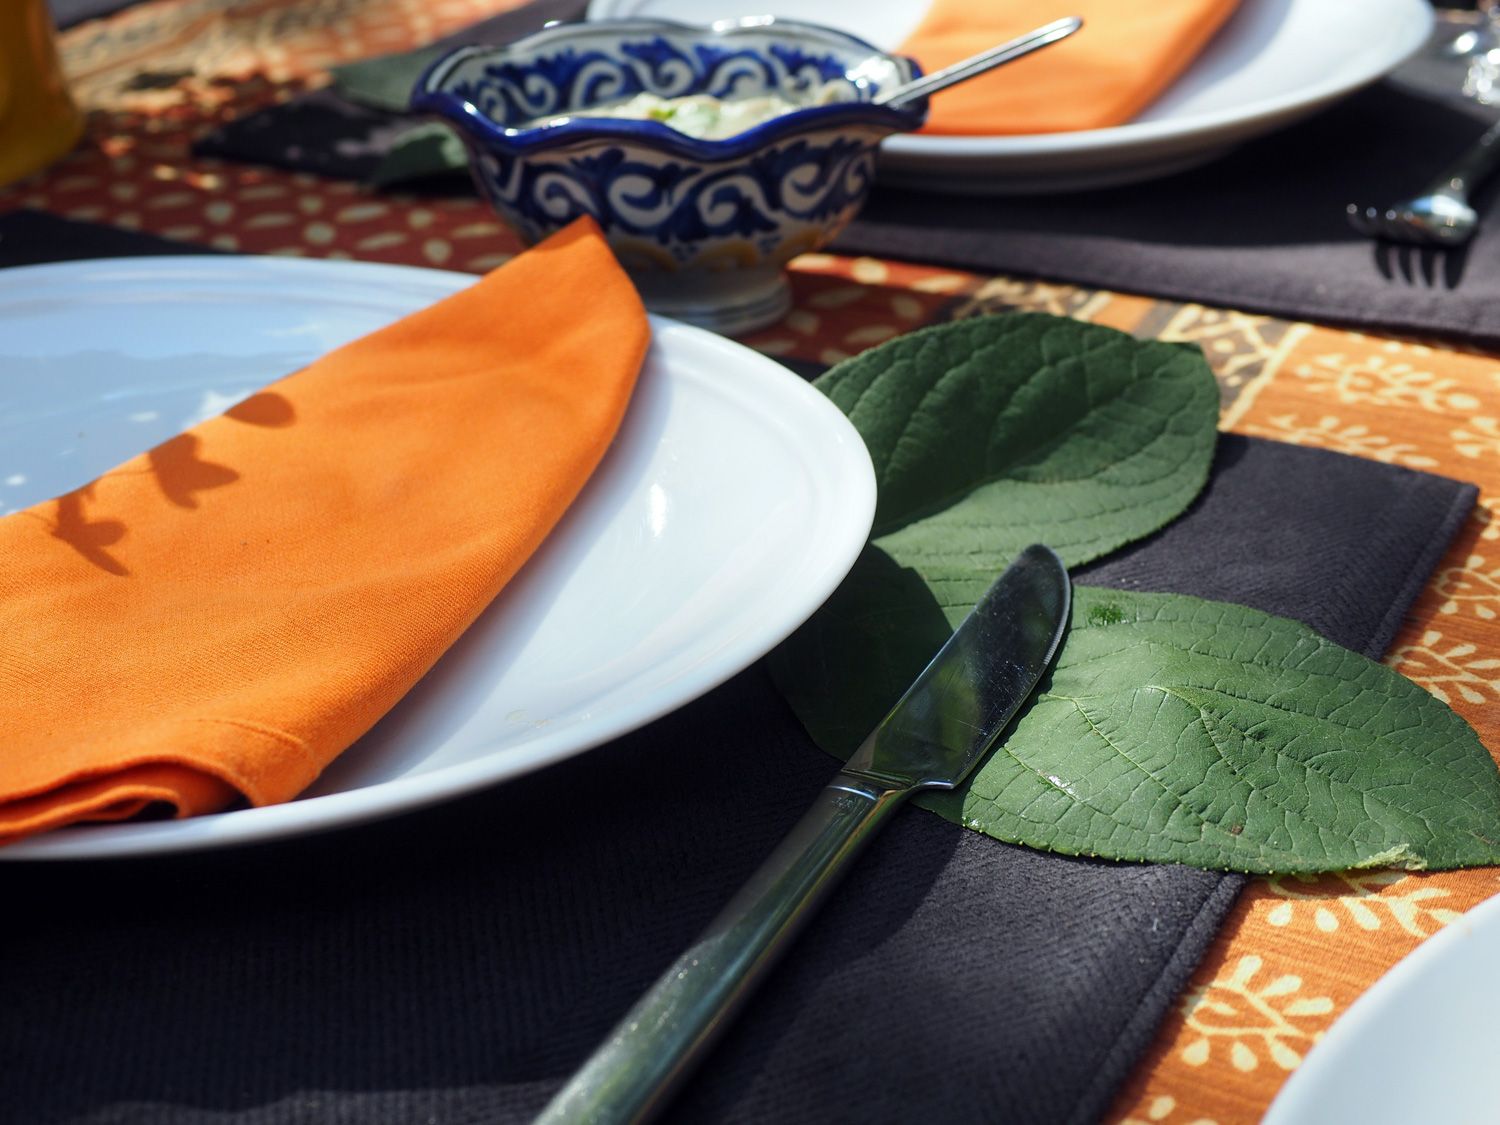 Color combinations can range from earthy to floral to plain white with pops of color. Just use your imagination and what feels good. Here I used some floral leaves as a landing spot for utensils and drinks.